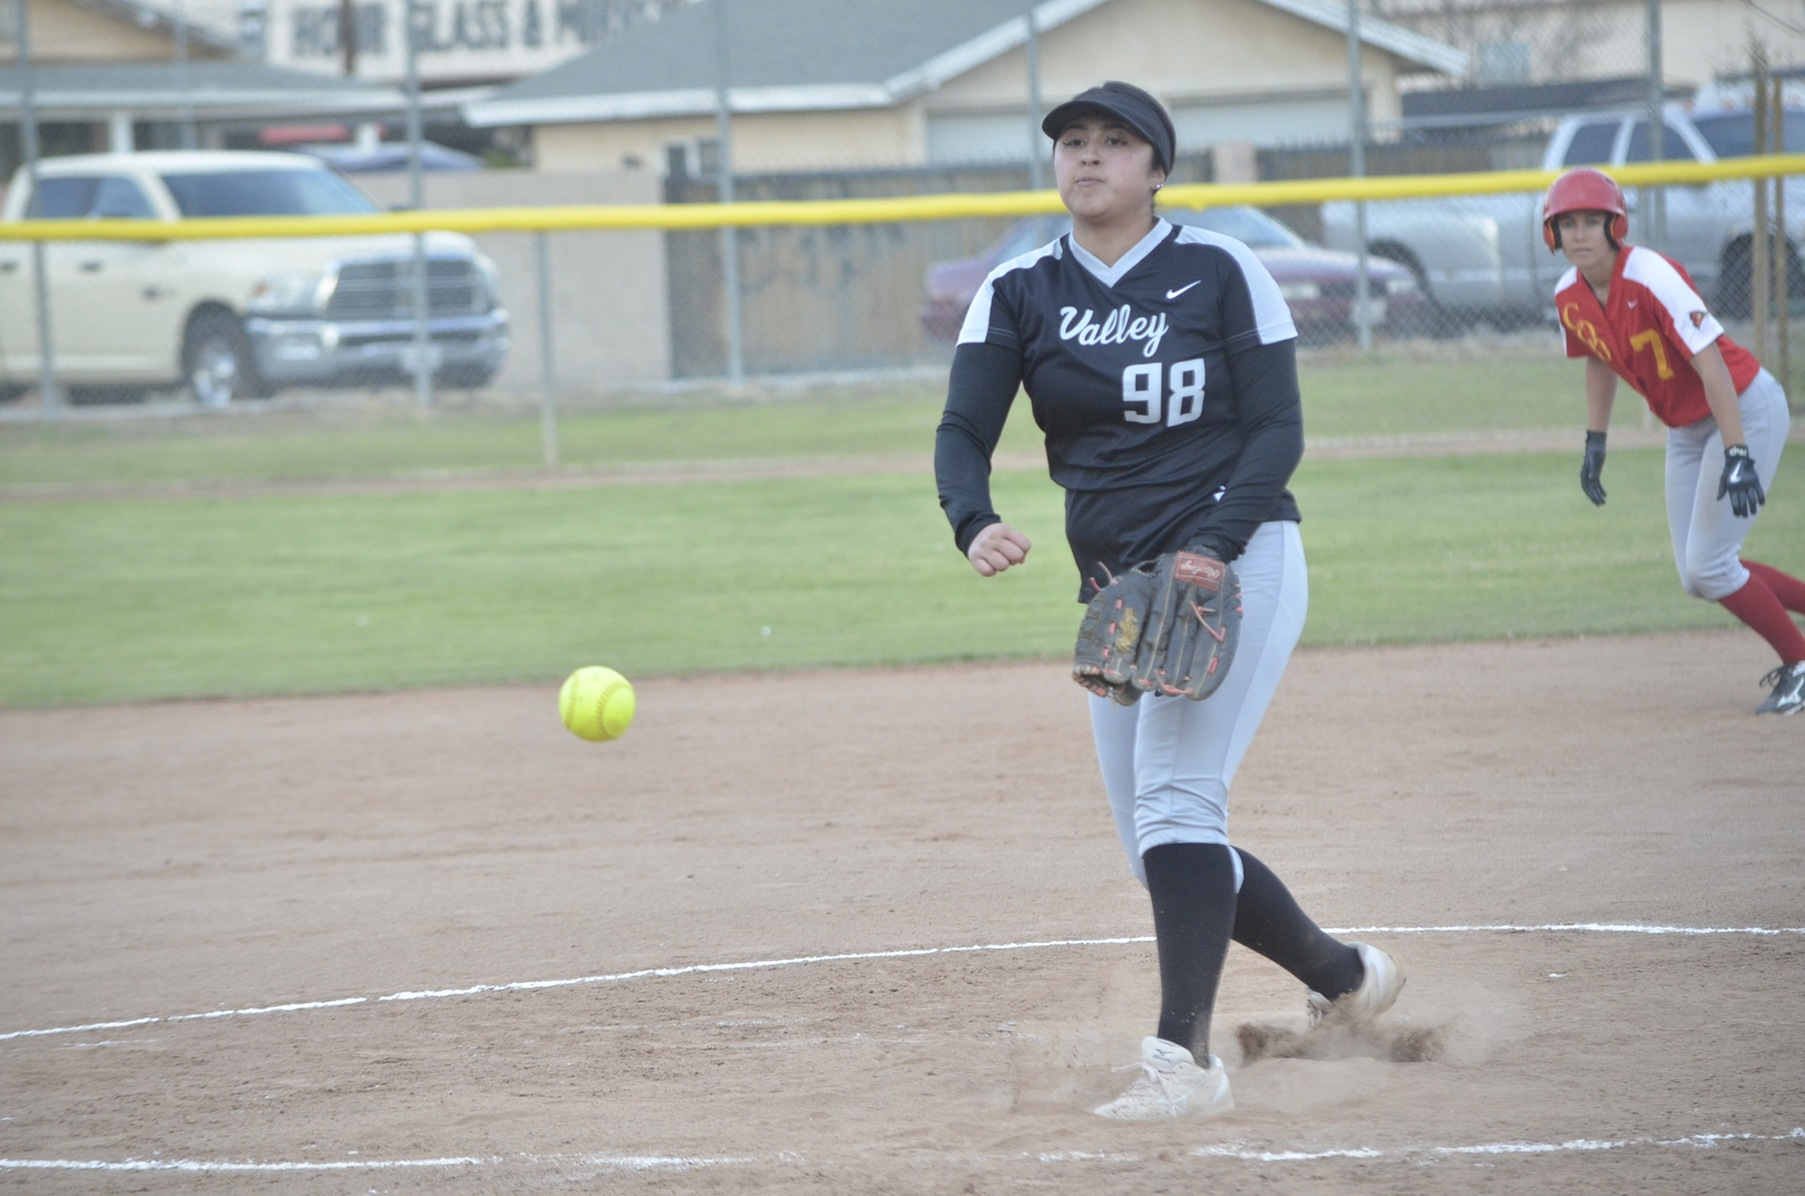 Big Inning Helps Wolverines Win in Conference Opener